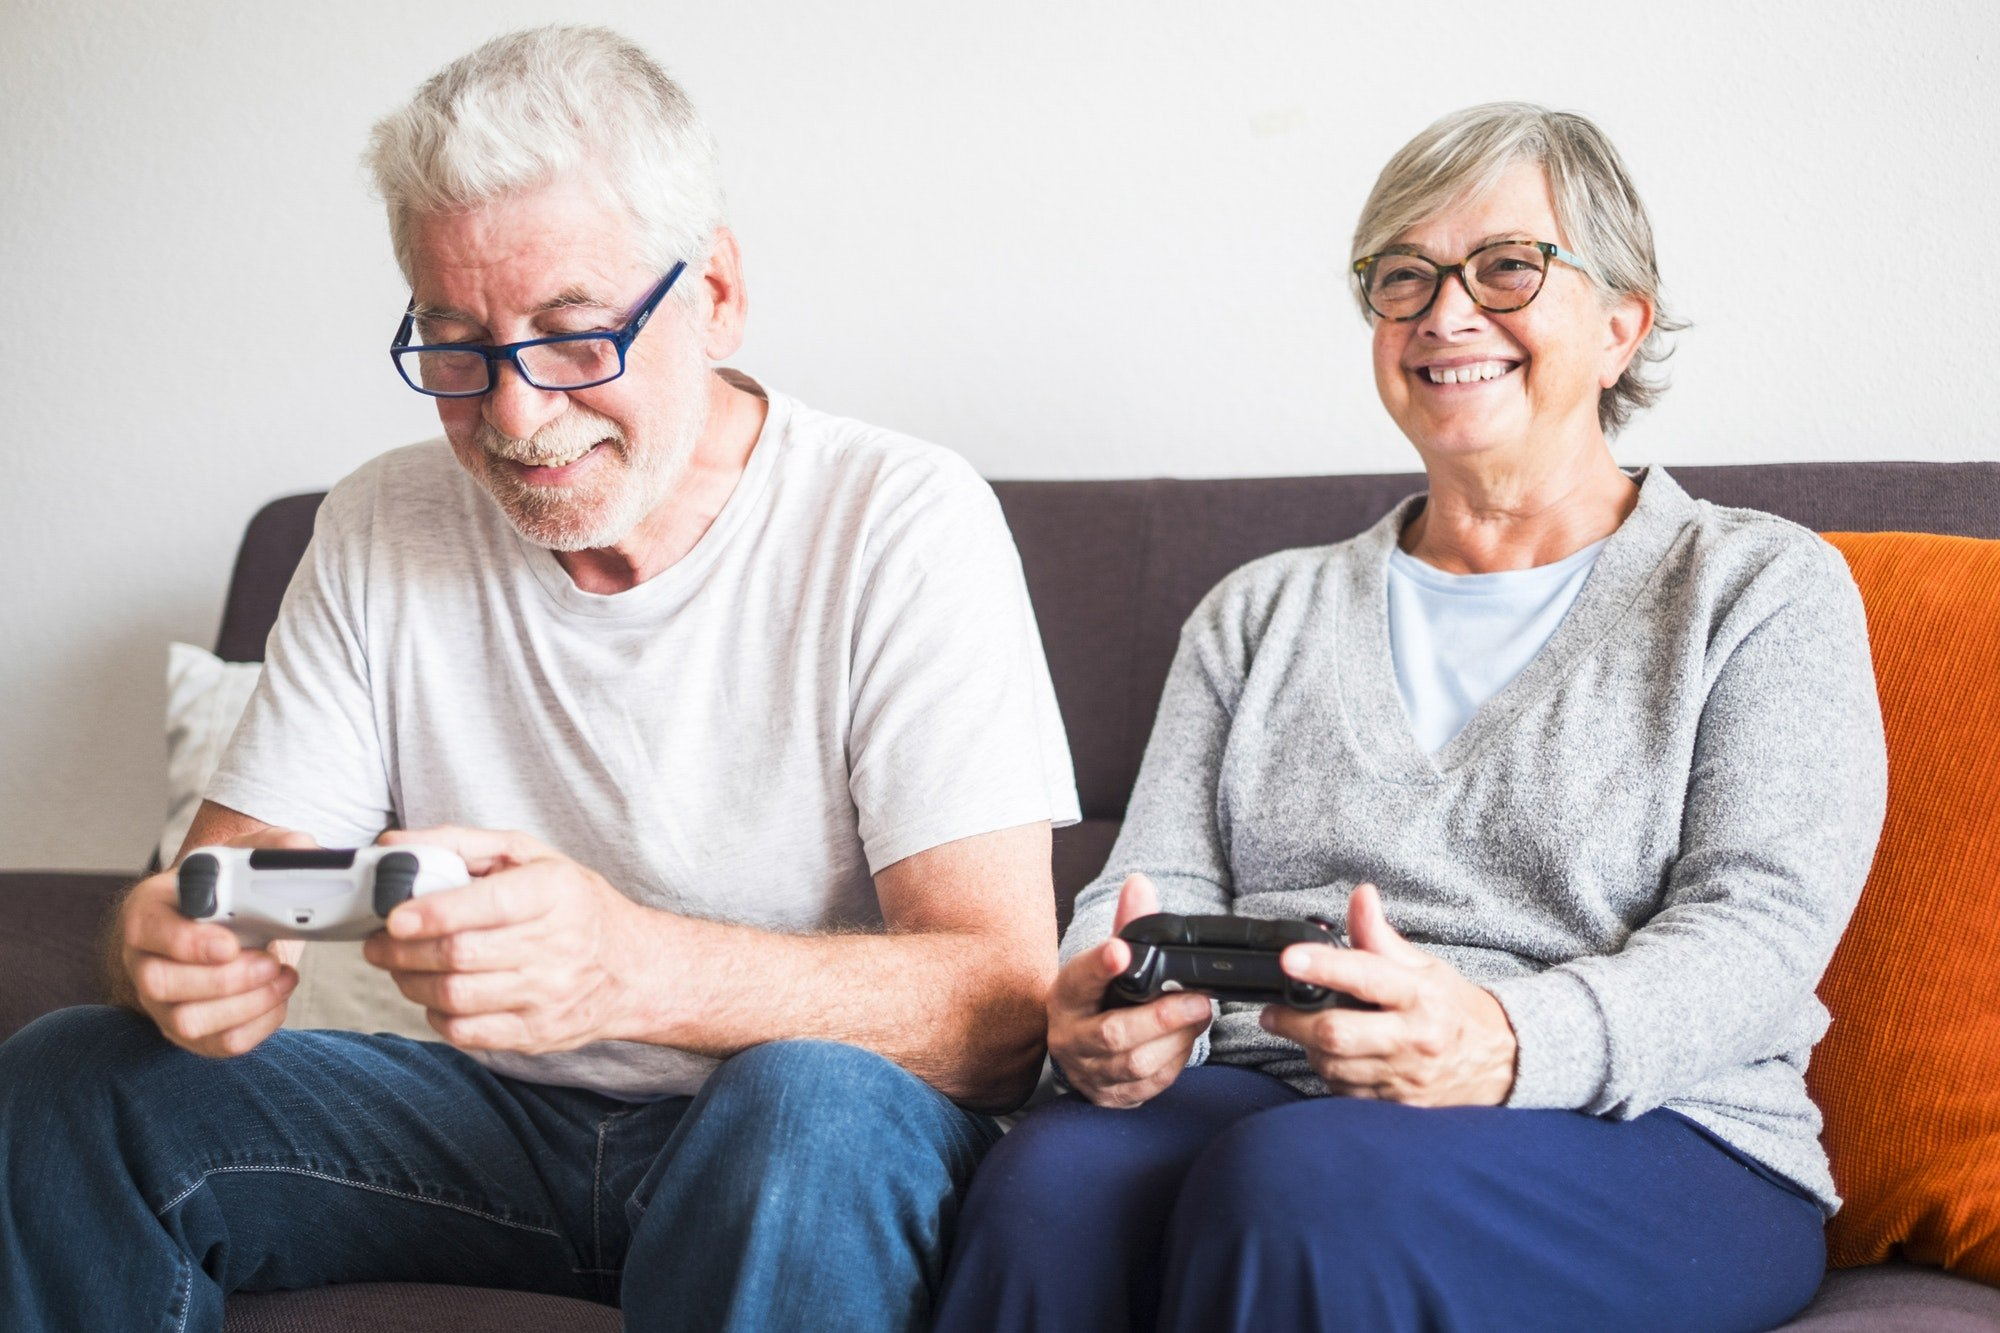 couple of seniors and mature people looking and the tv and using controllers playing video games